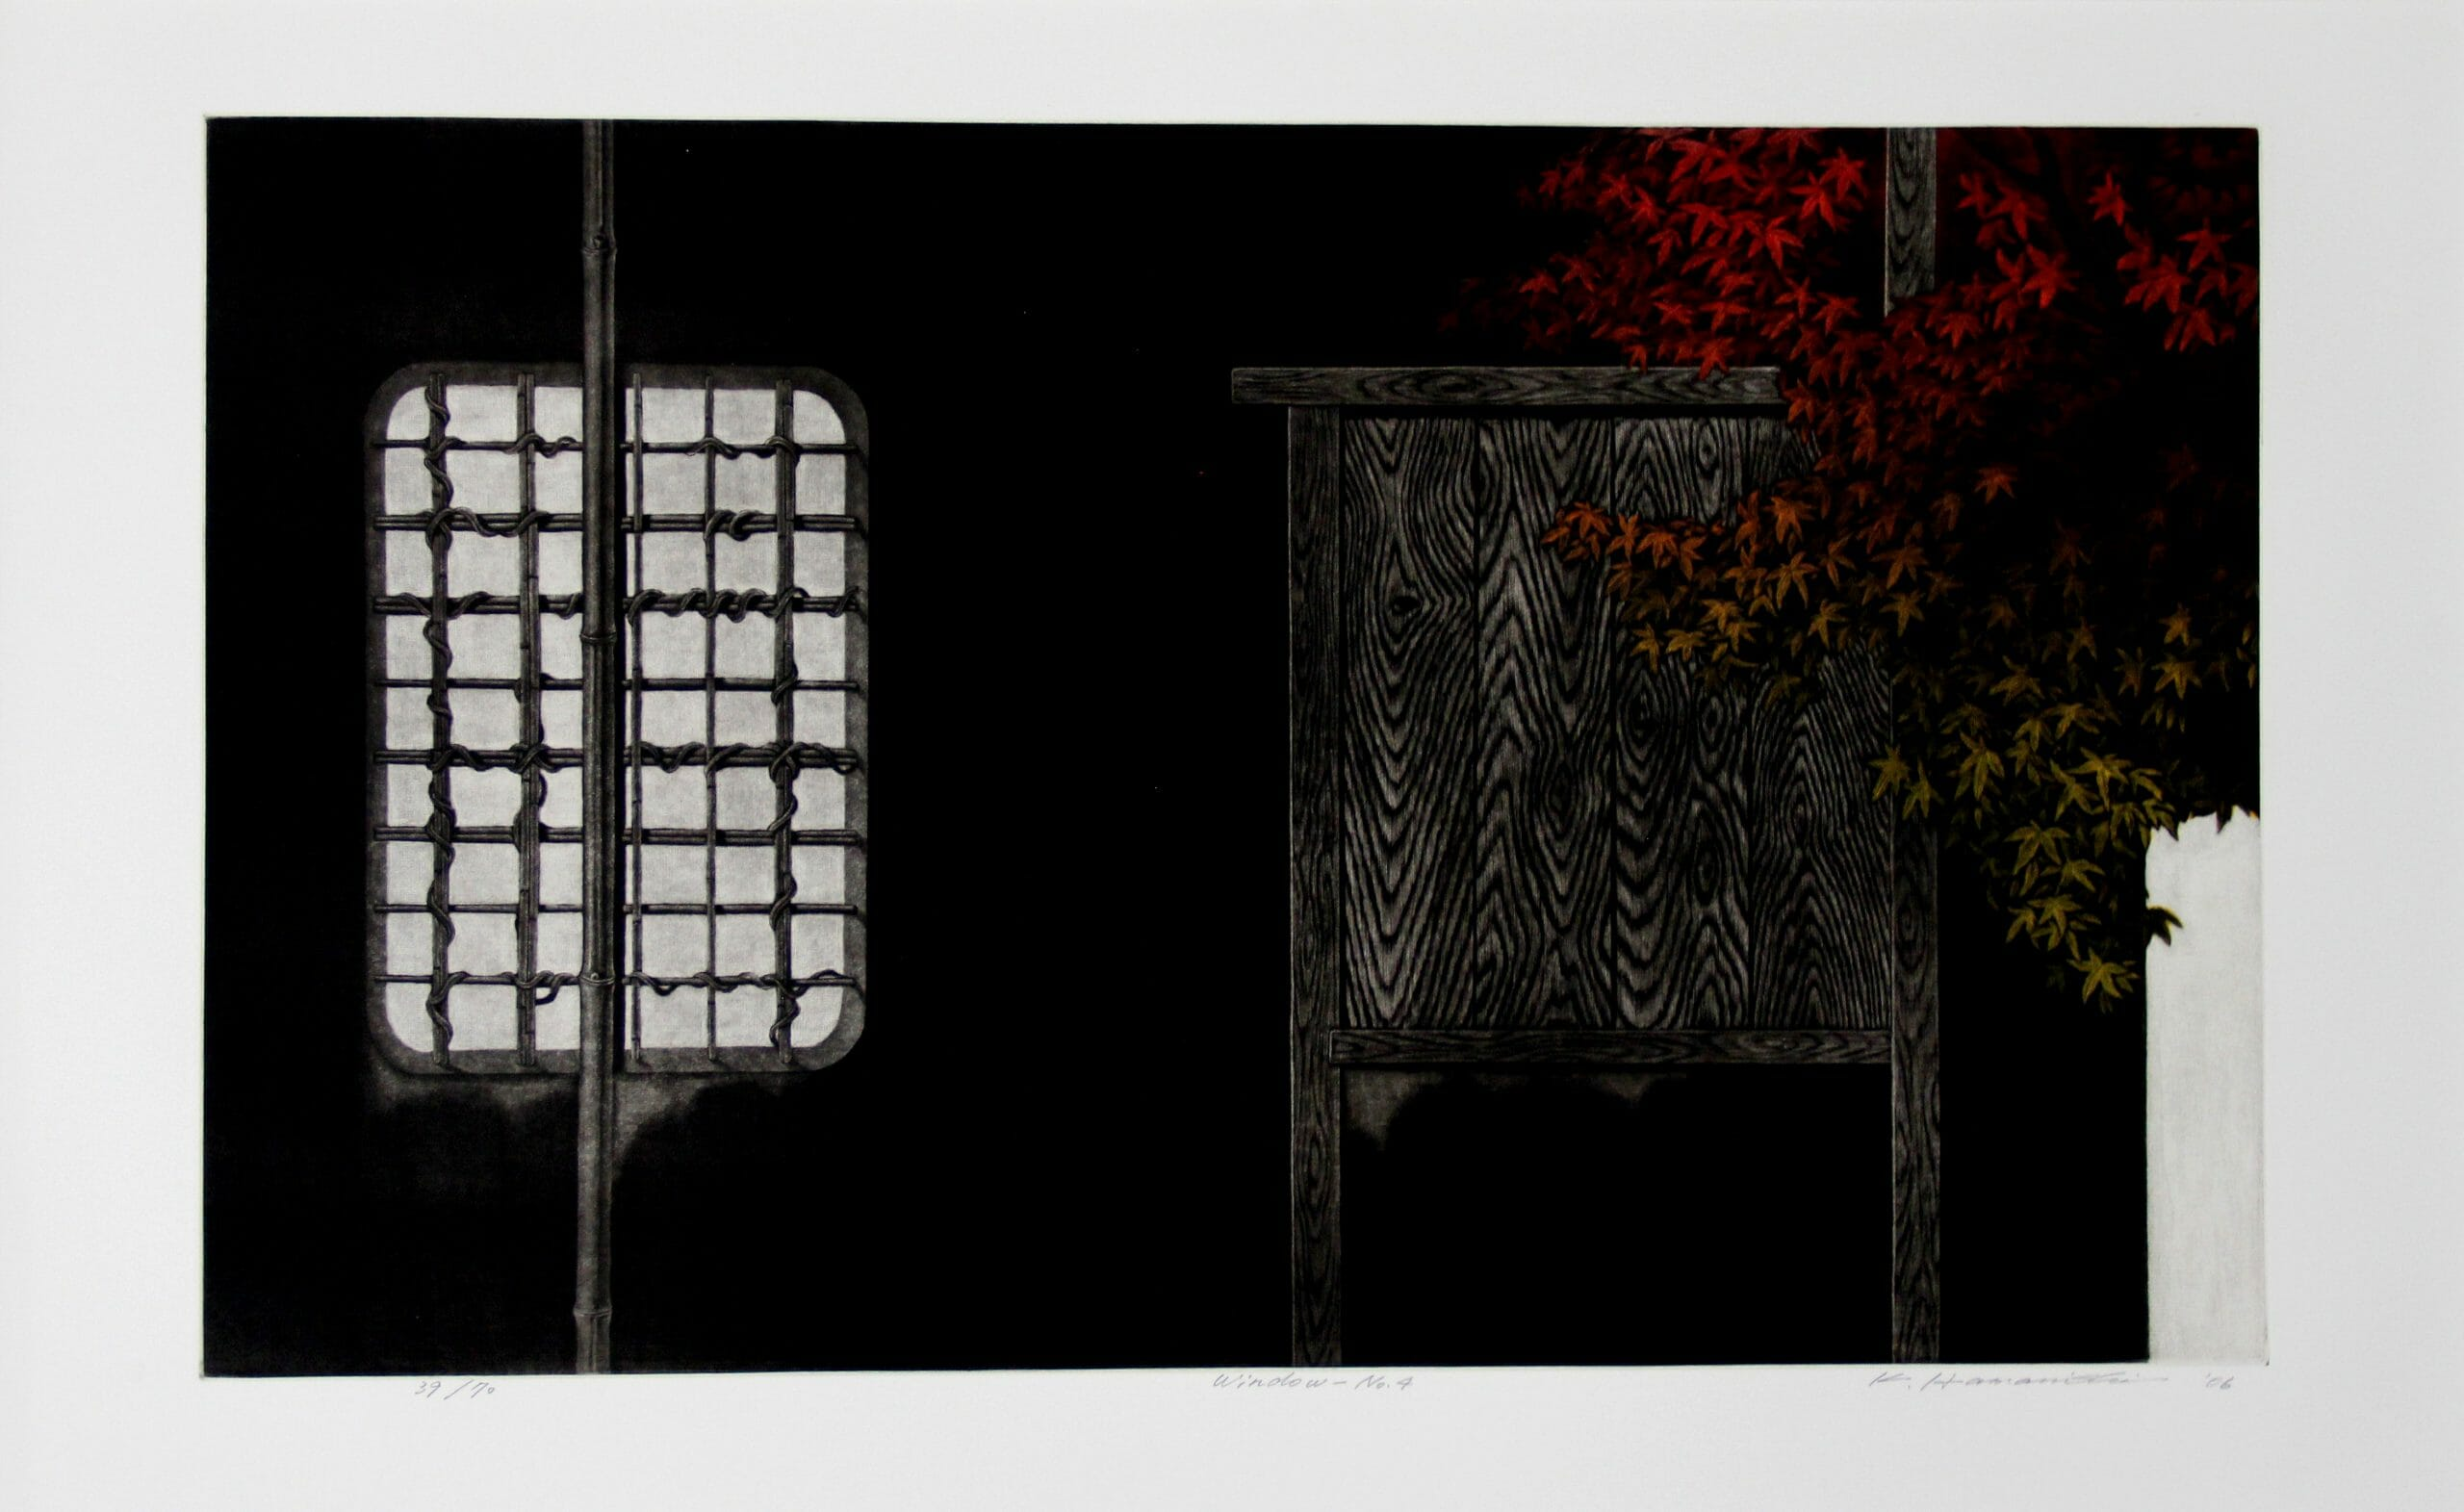 Hamanishi Katsunori Window No 439 of 70 Mezzotint_